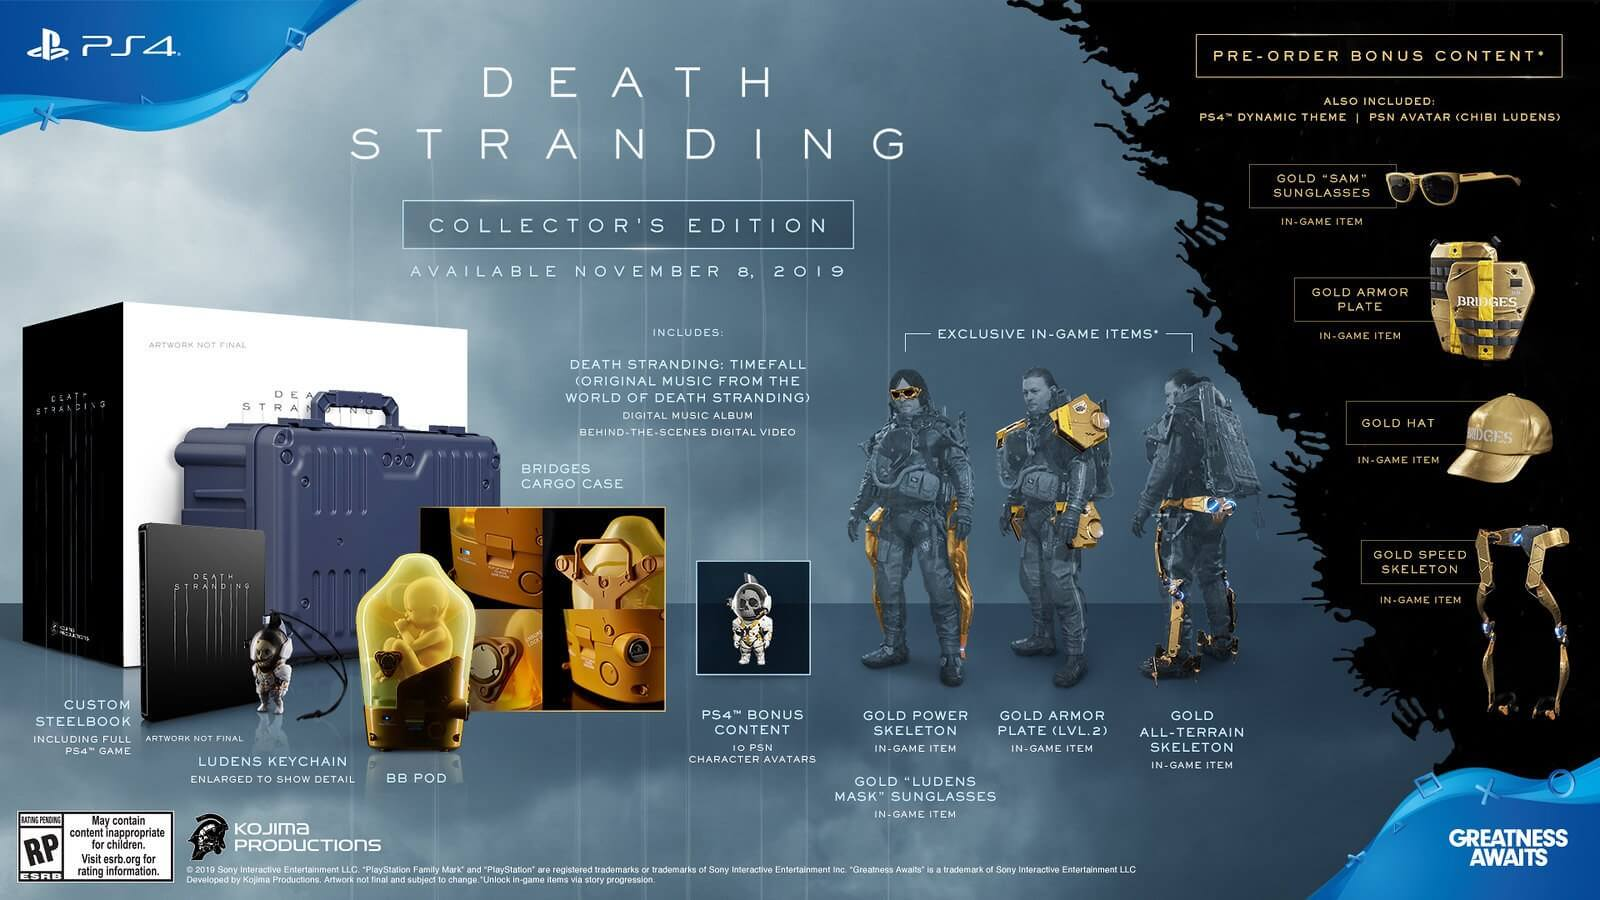 Death Stranding's Collector's Edition has been revealed, and it includes a pod with a baby inside